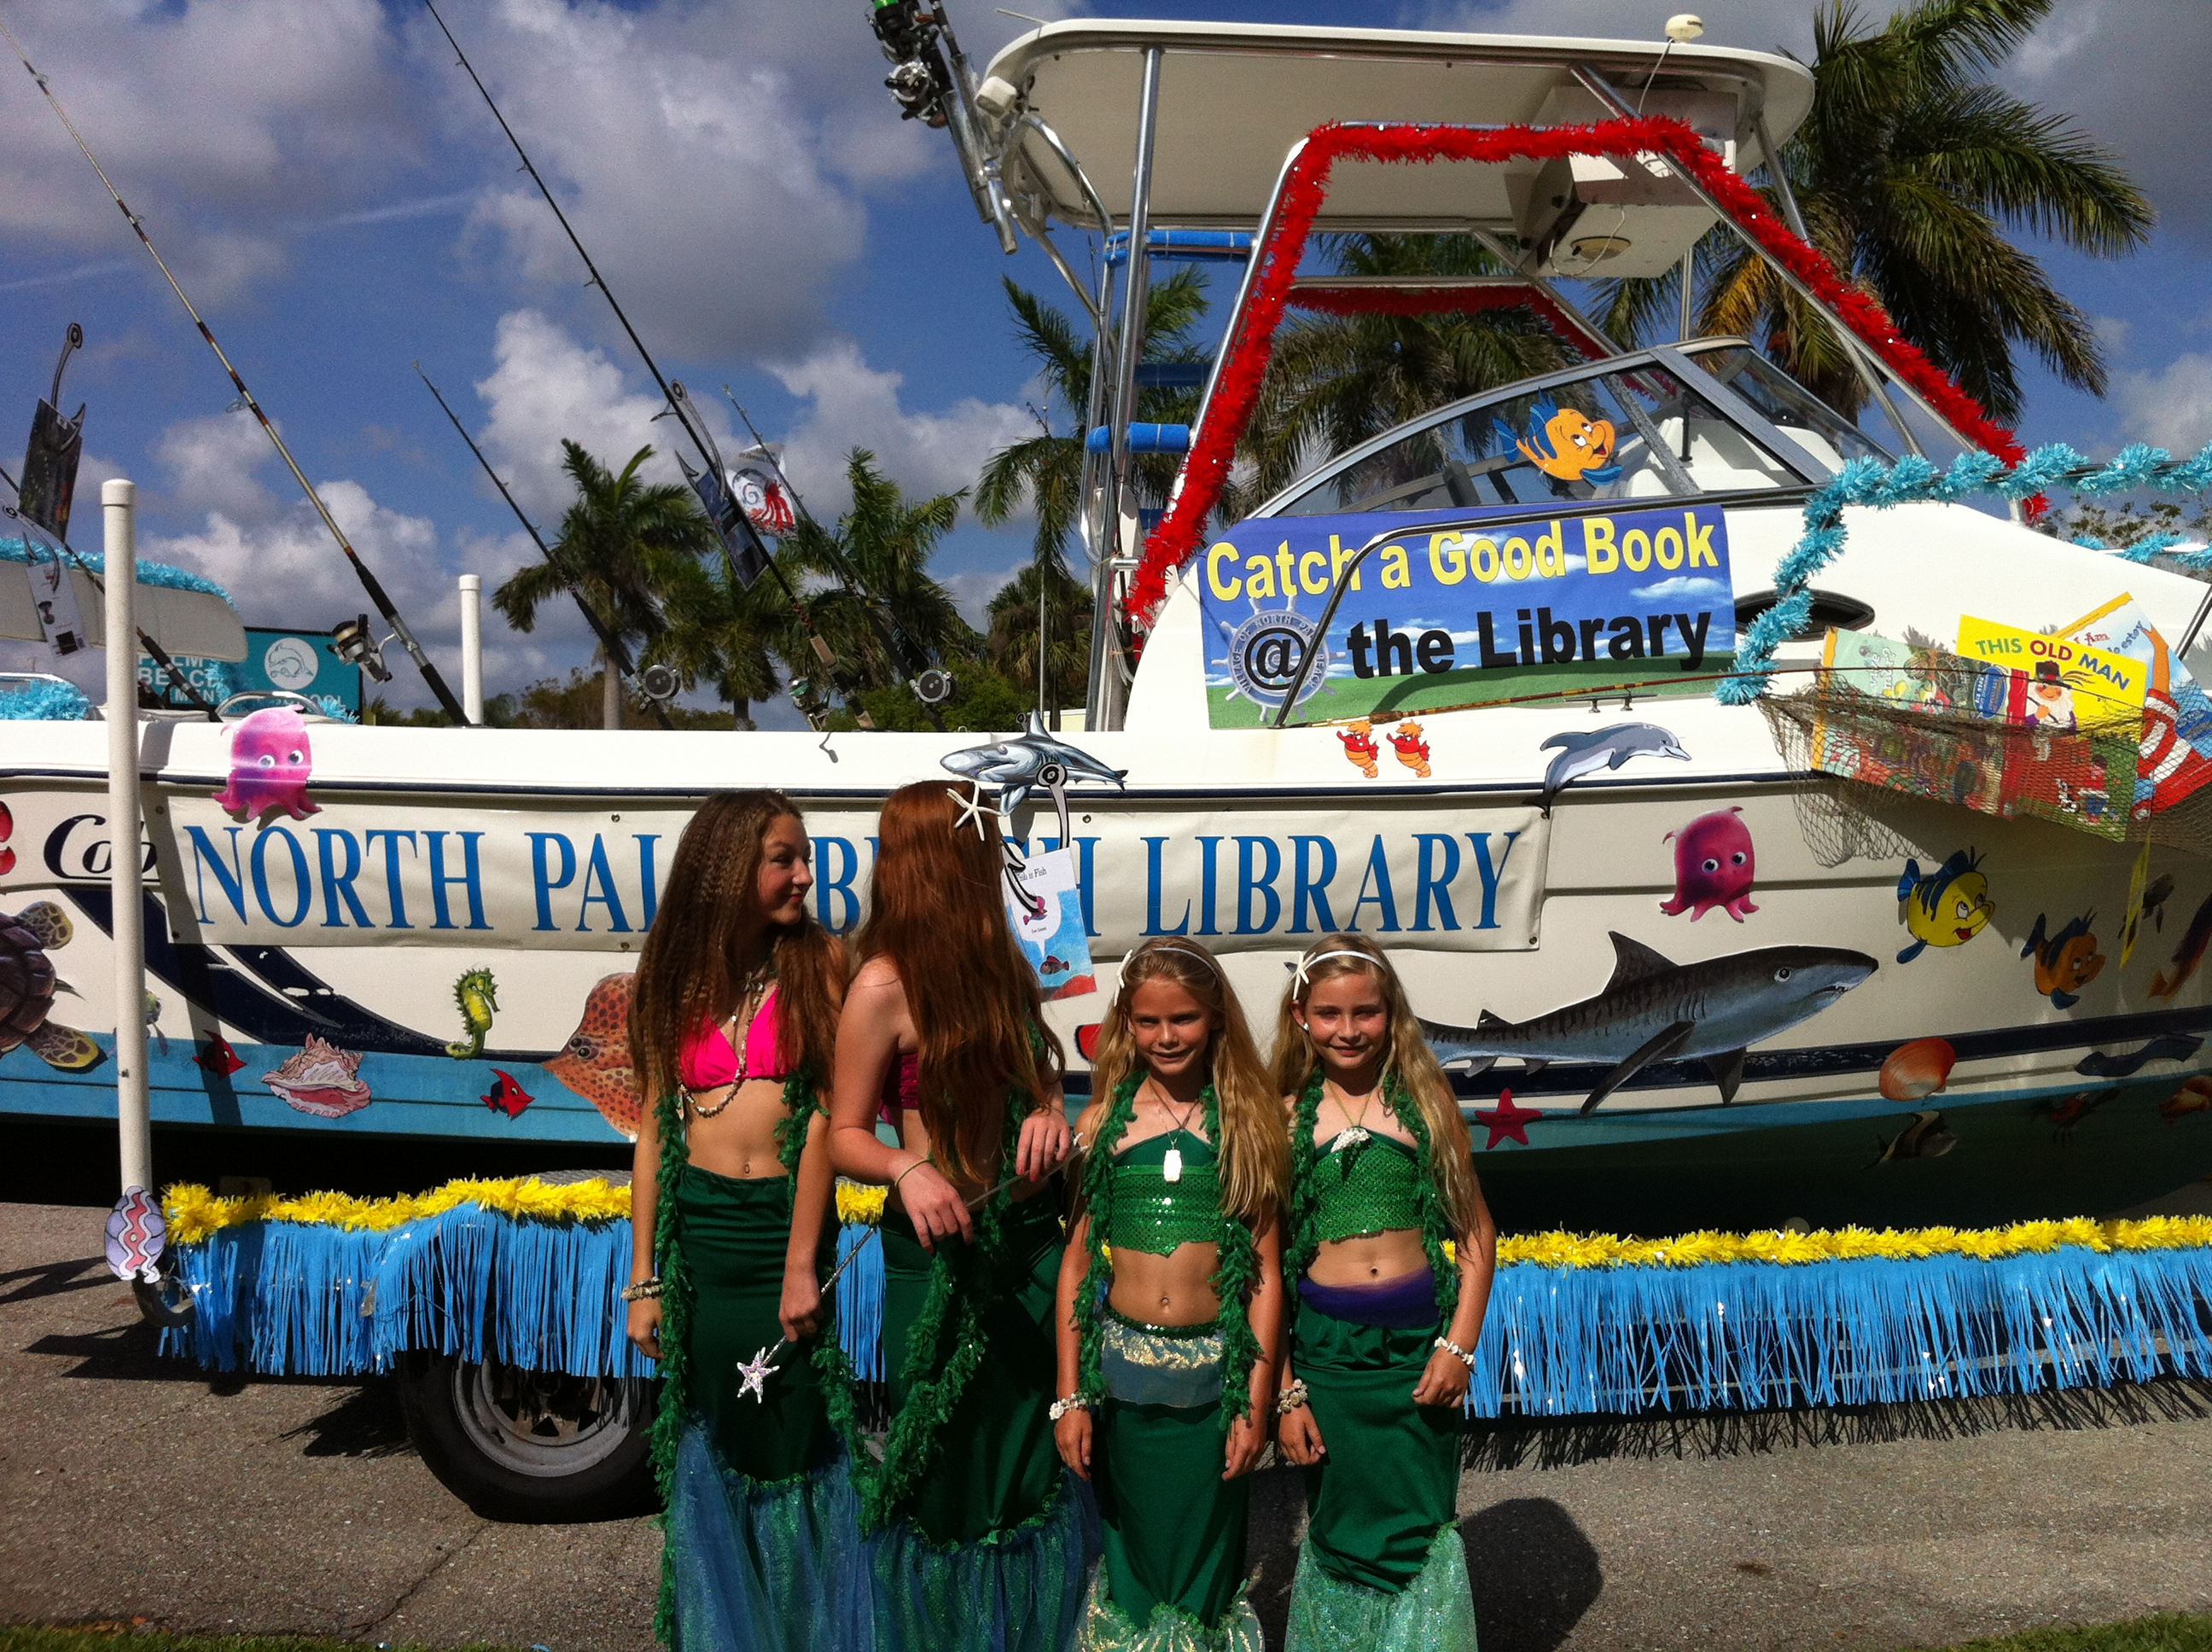 The sea ladies stand in front of the float